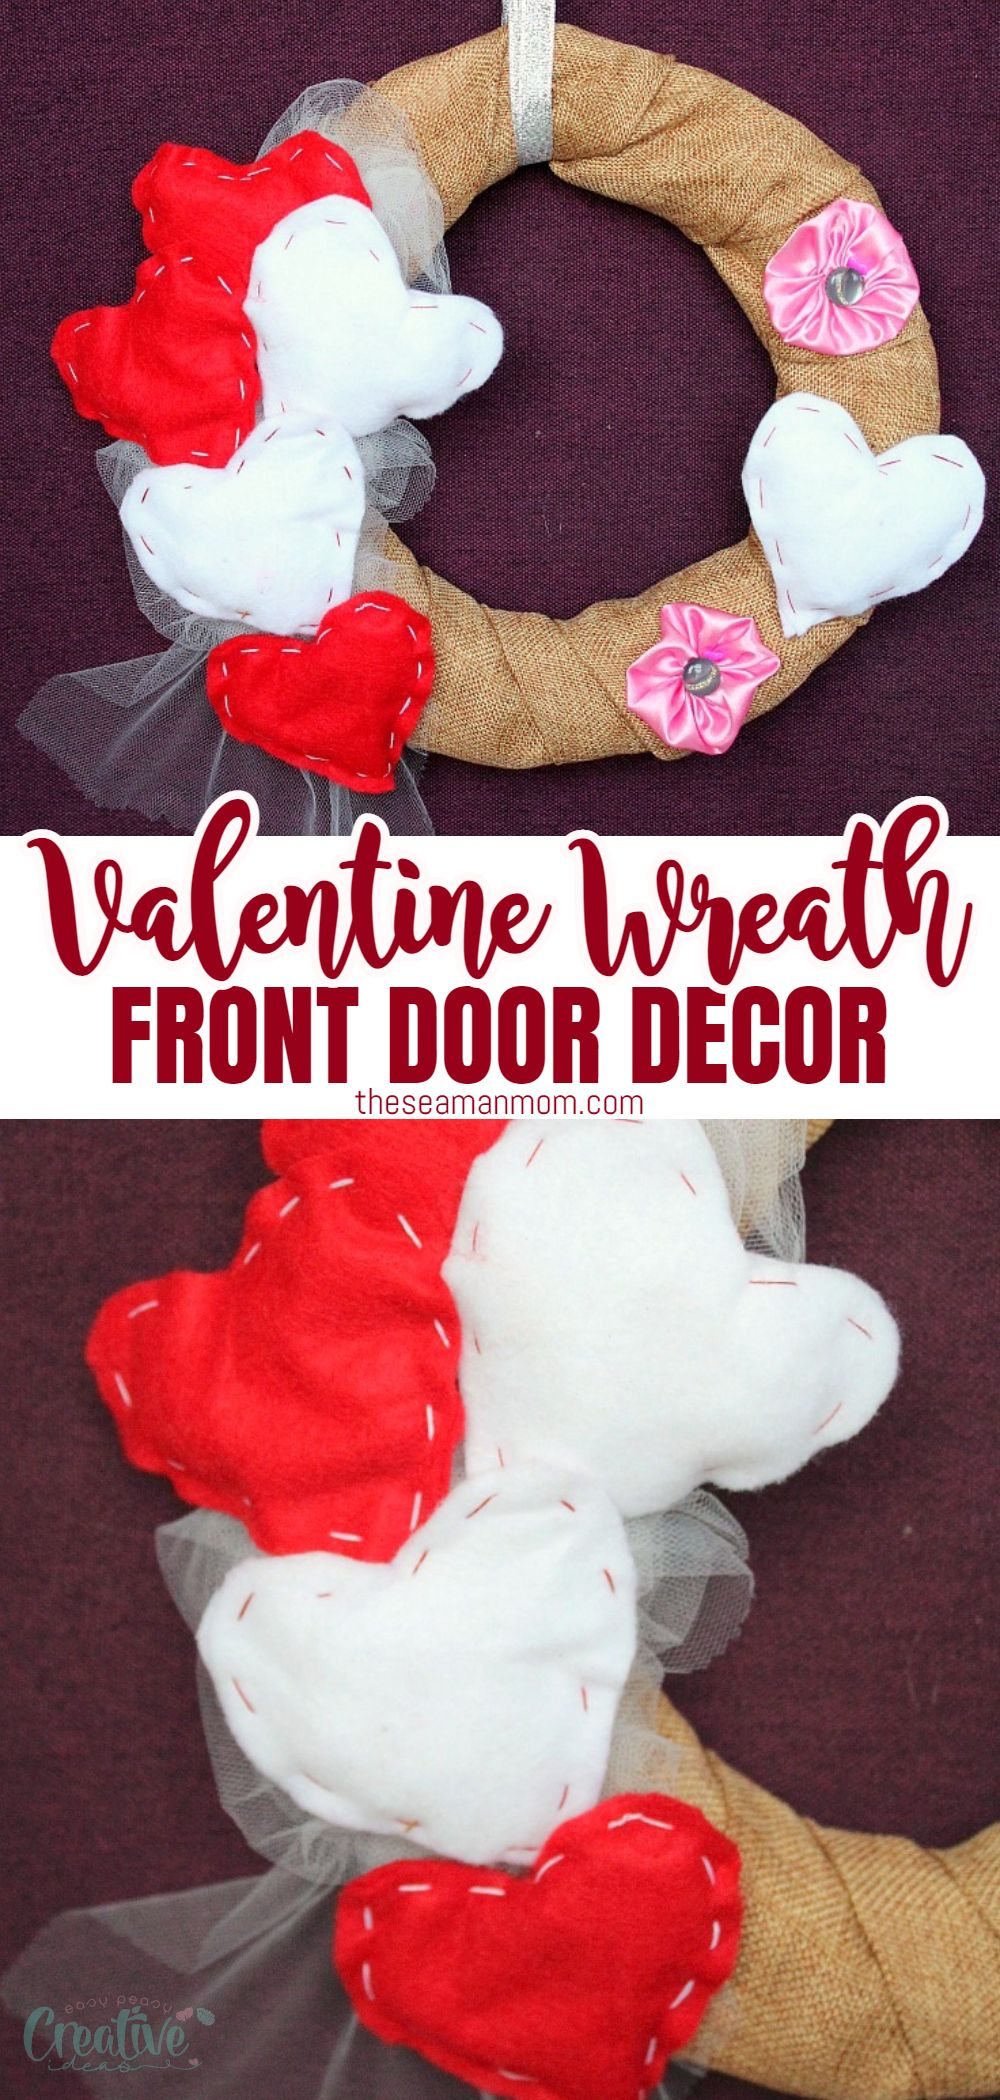 Looking for easy, cute and inexpensive Valentine decorations for the home? This DIY Valentine wreath is perfect to make your home a little more festive. via @petroneagu